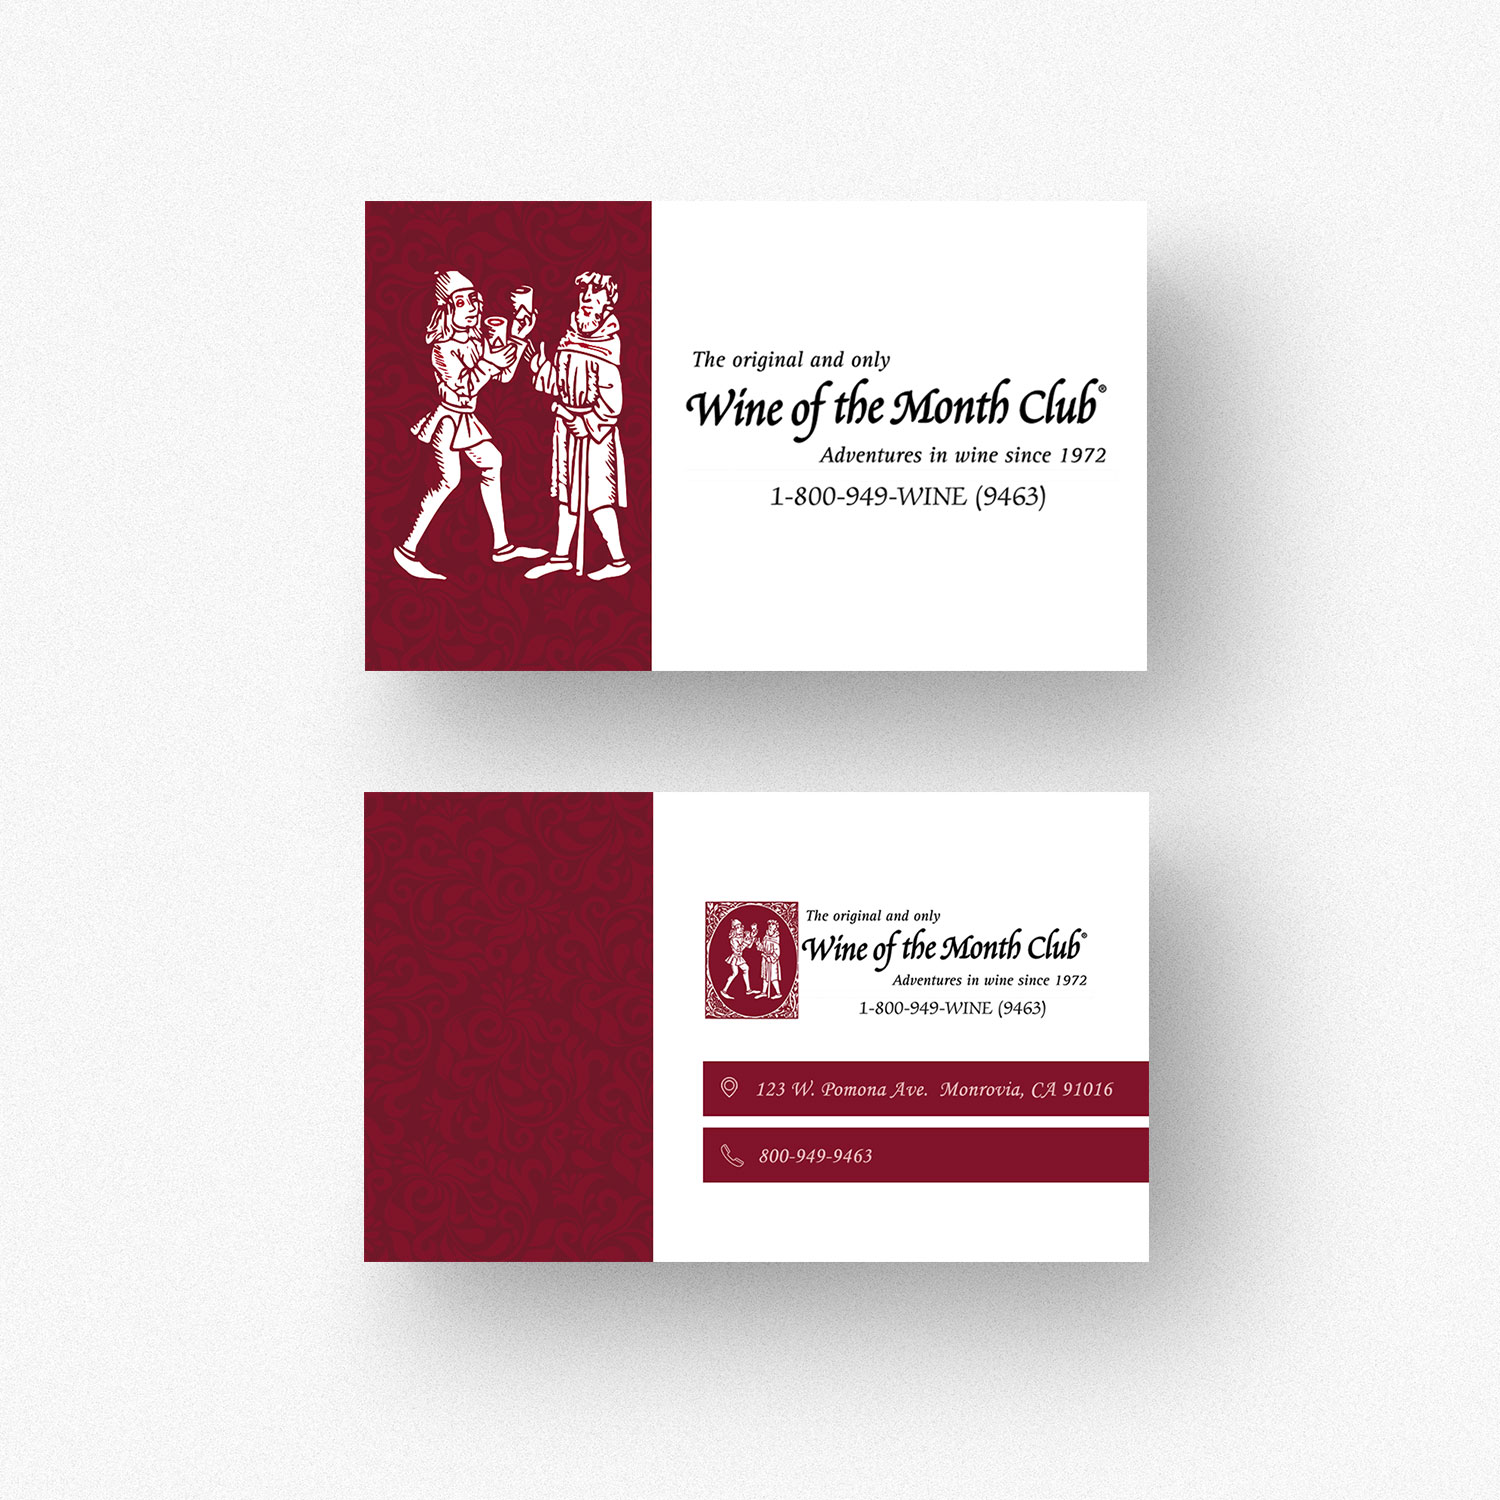 Business business card design for wine of the month club by feel business business card design for wine of the month club in united states design 17845467 colourmoves